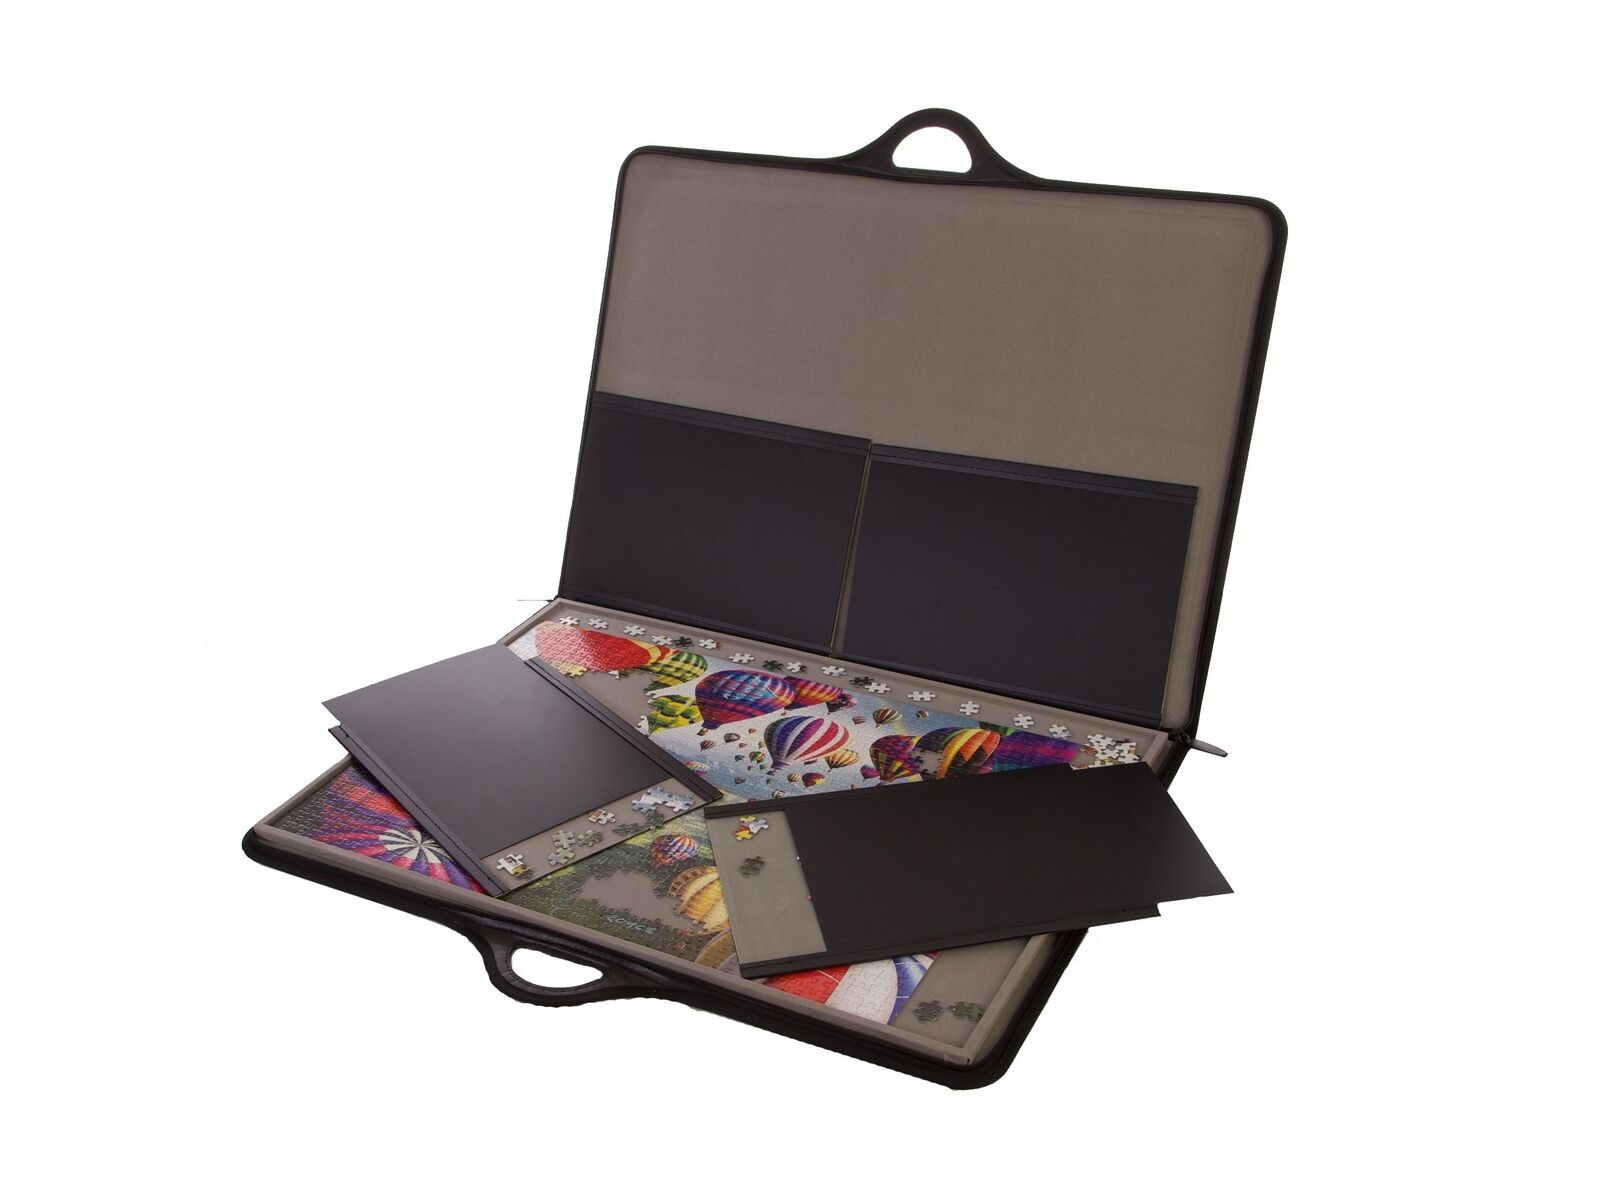 JIGSORT 1000 - Jigsaw puzzle case for up from to 1,000 pieces from up Jigthings a39fb4